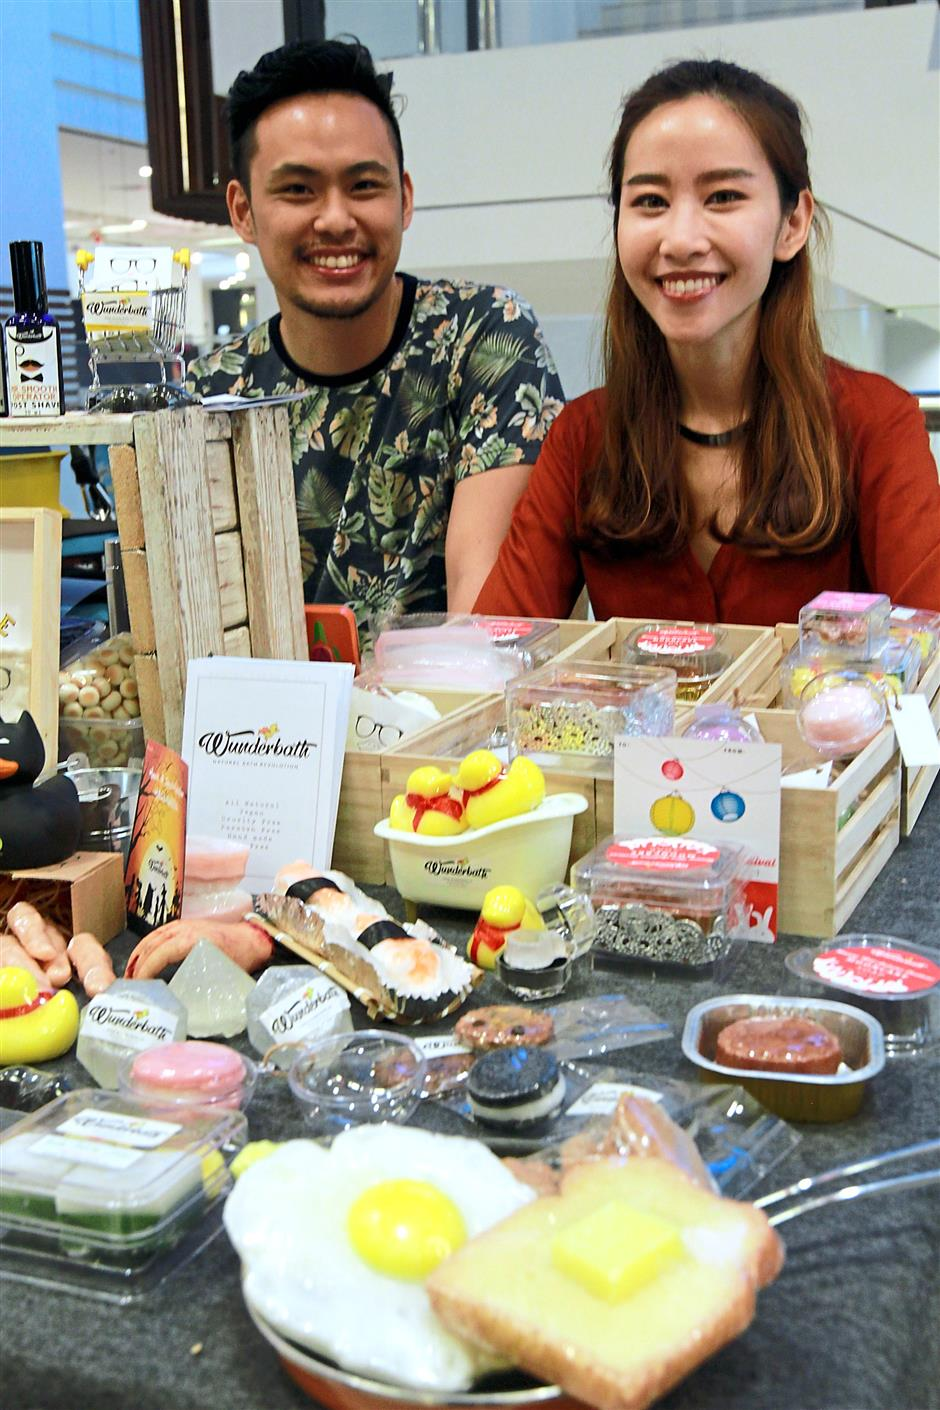 Evelyn Marieta with her husband Yong Jim showing their display of variety of soaps and lip stains